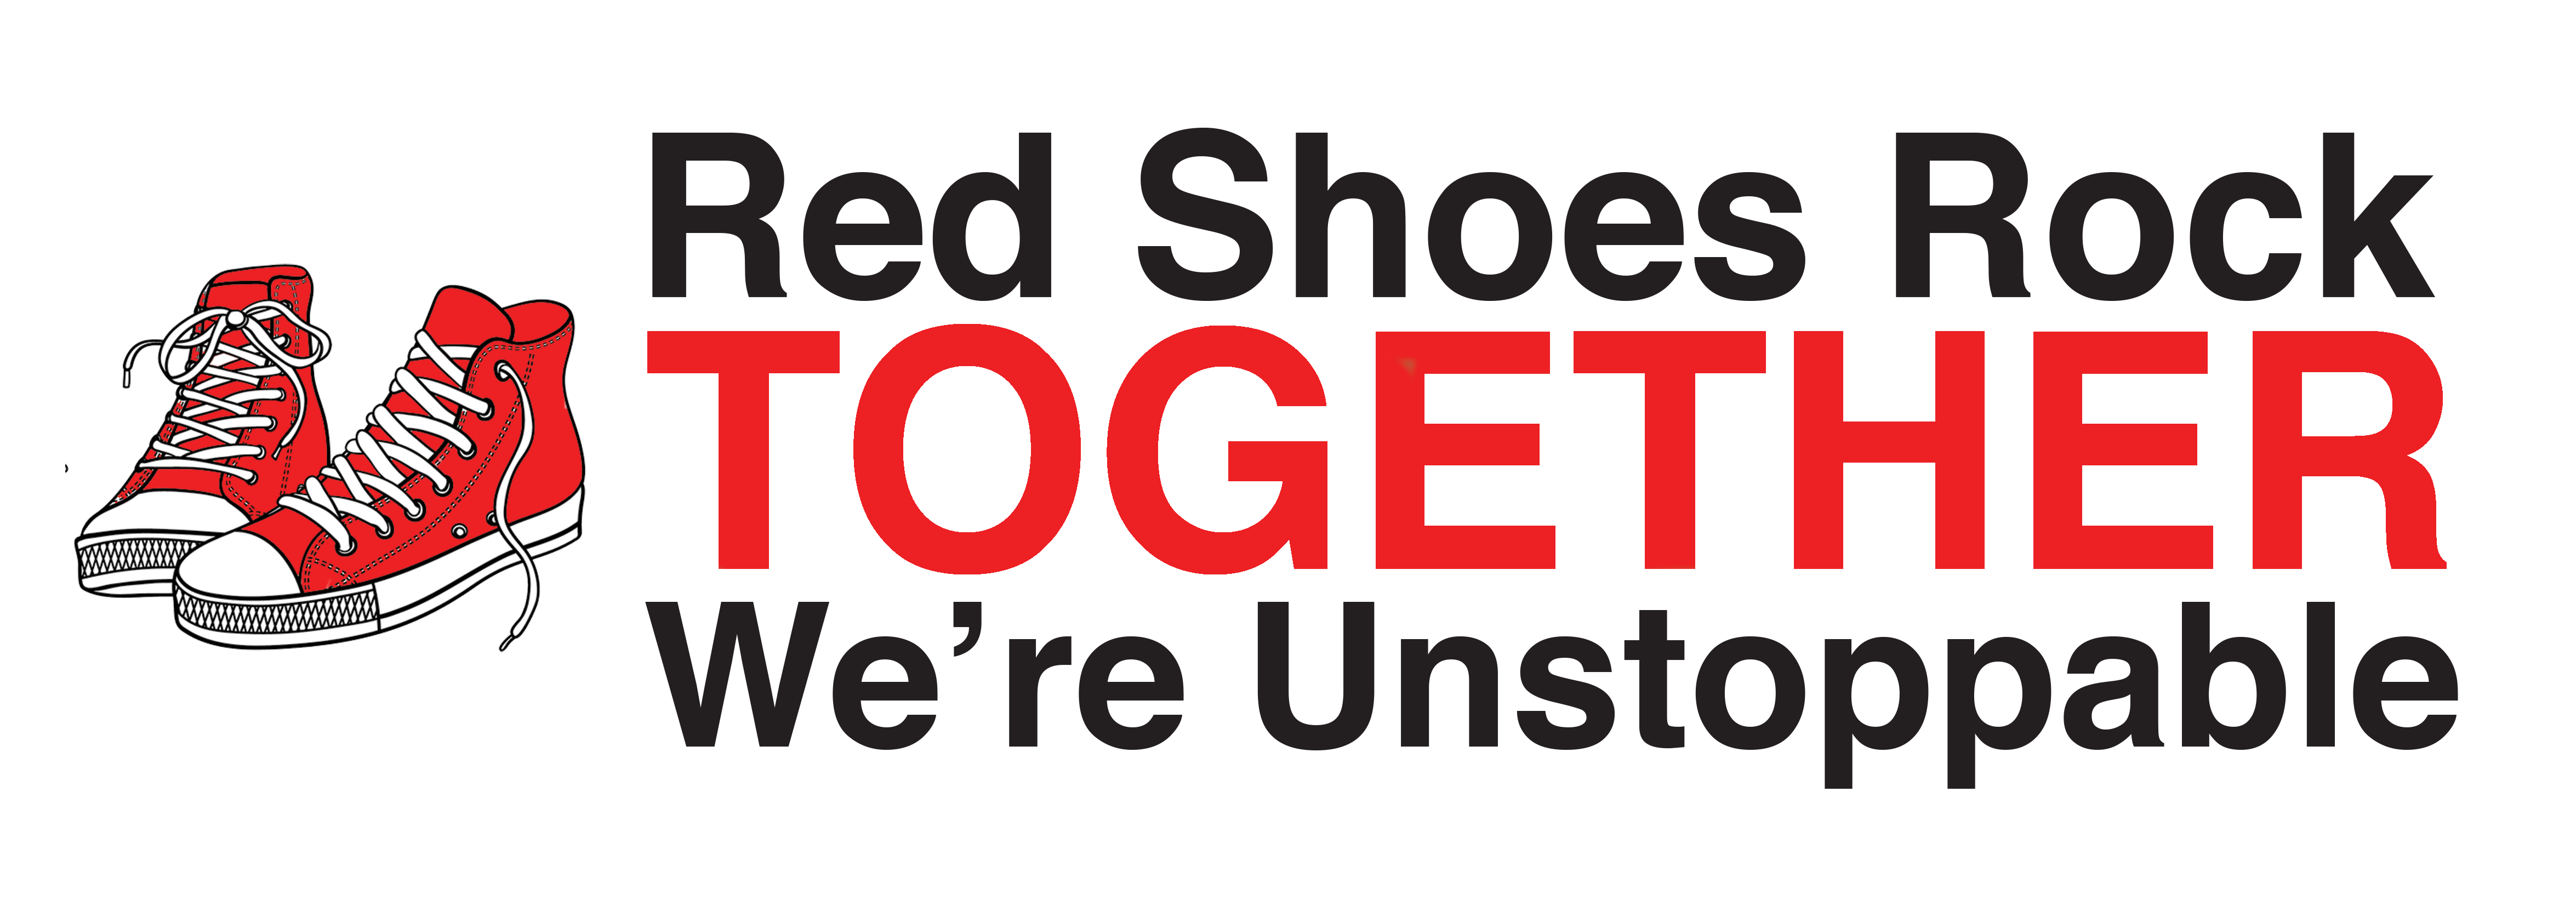 RedShoesRock-Together-Bumper-Sticker-Banner-2017